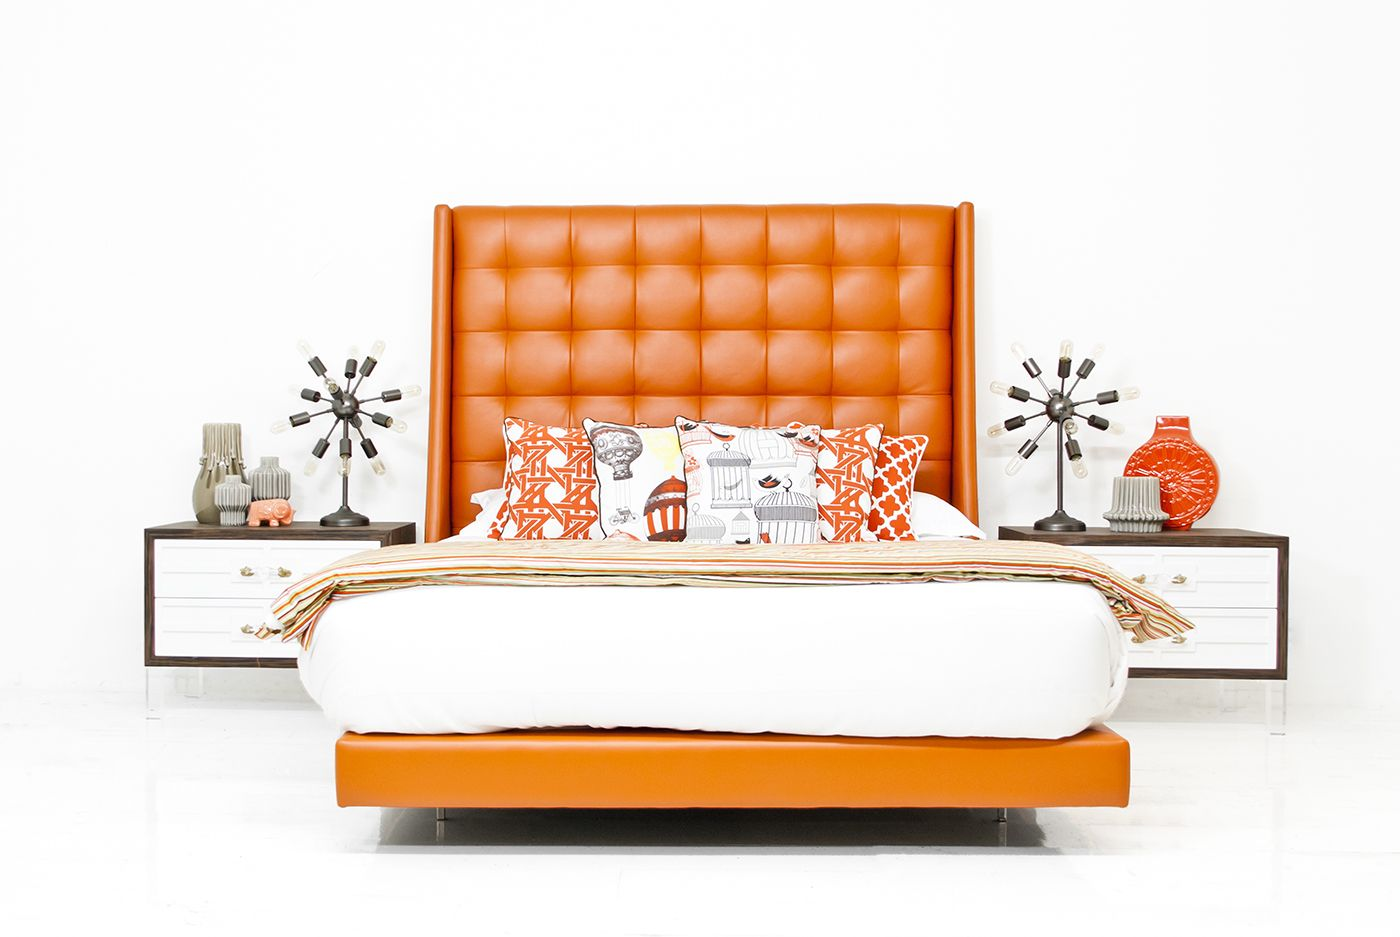 St Tropez Bed In Hermes Orange Faux Leather Queen Upholstered